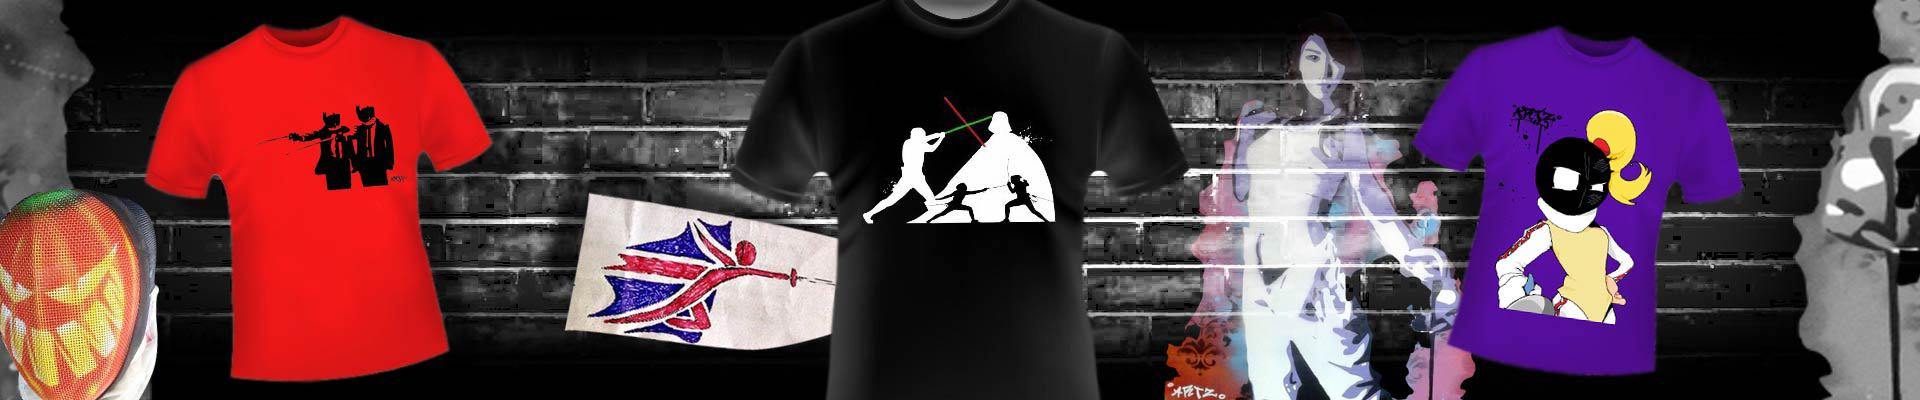 fencingstuff themed t-shirts